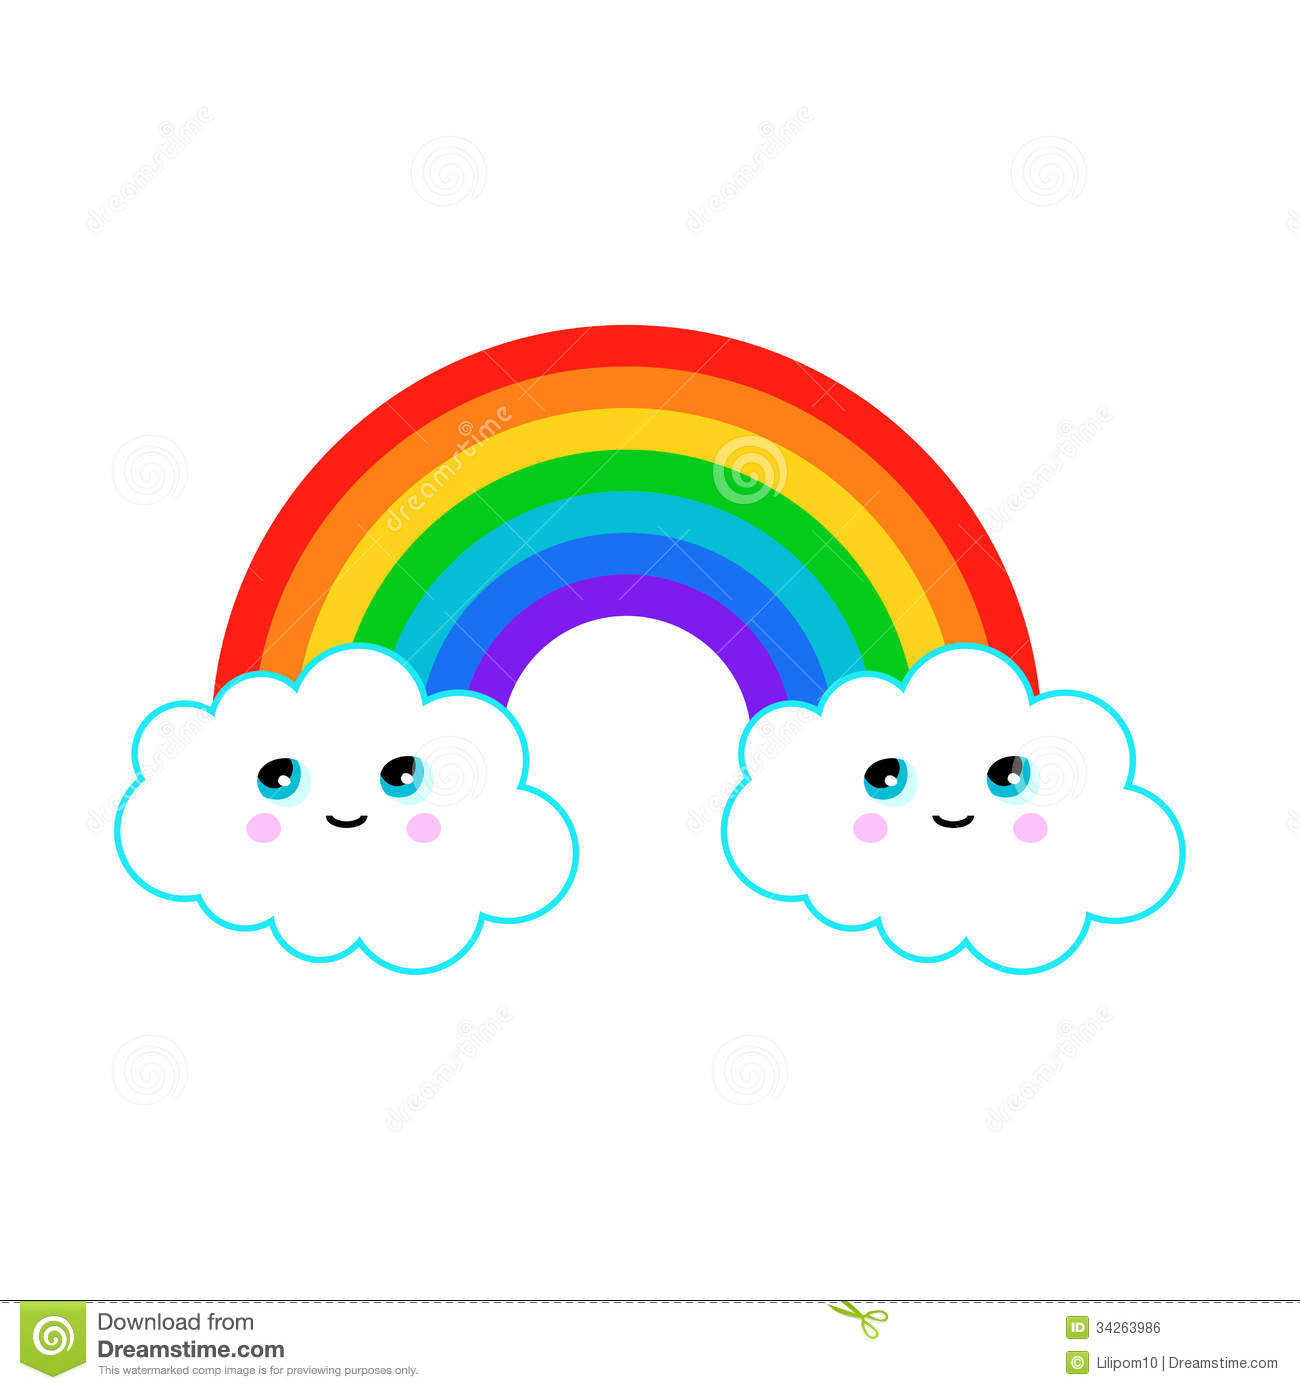 clipart rainbow with clouds - photo #40